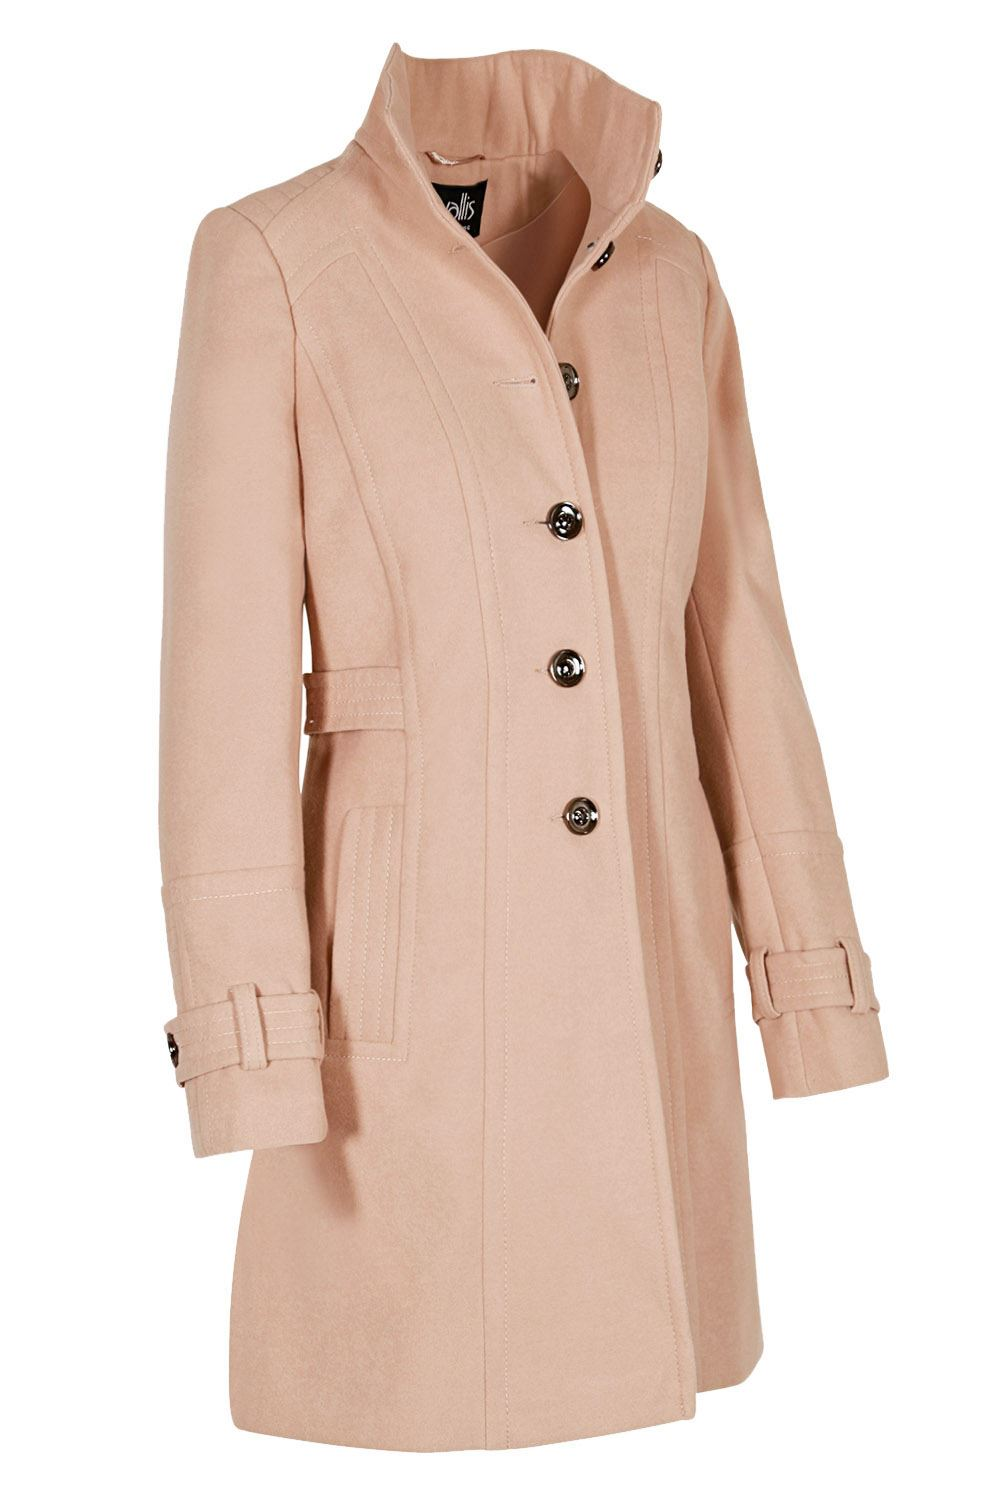 NEW-Ex-Wallis-Funnel-Neck-Button-Down-Winter-Coat-in-Beige-or-Black-Size-8-16 thumbnail 3